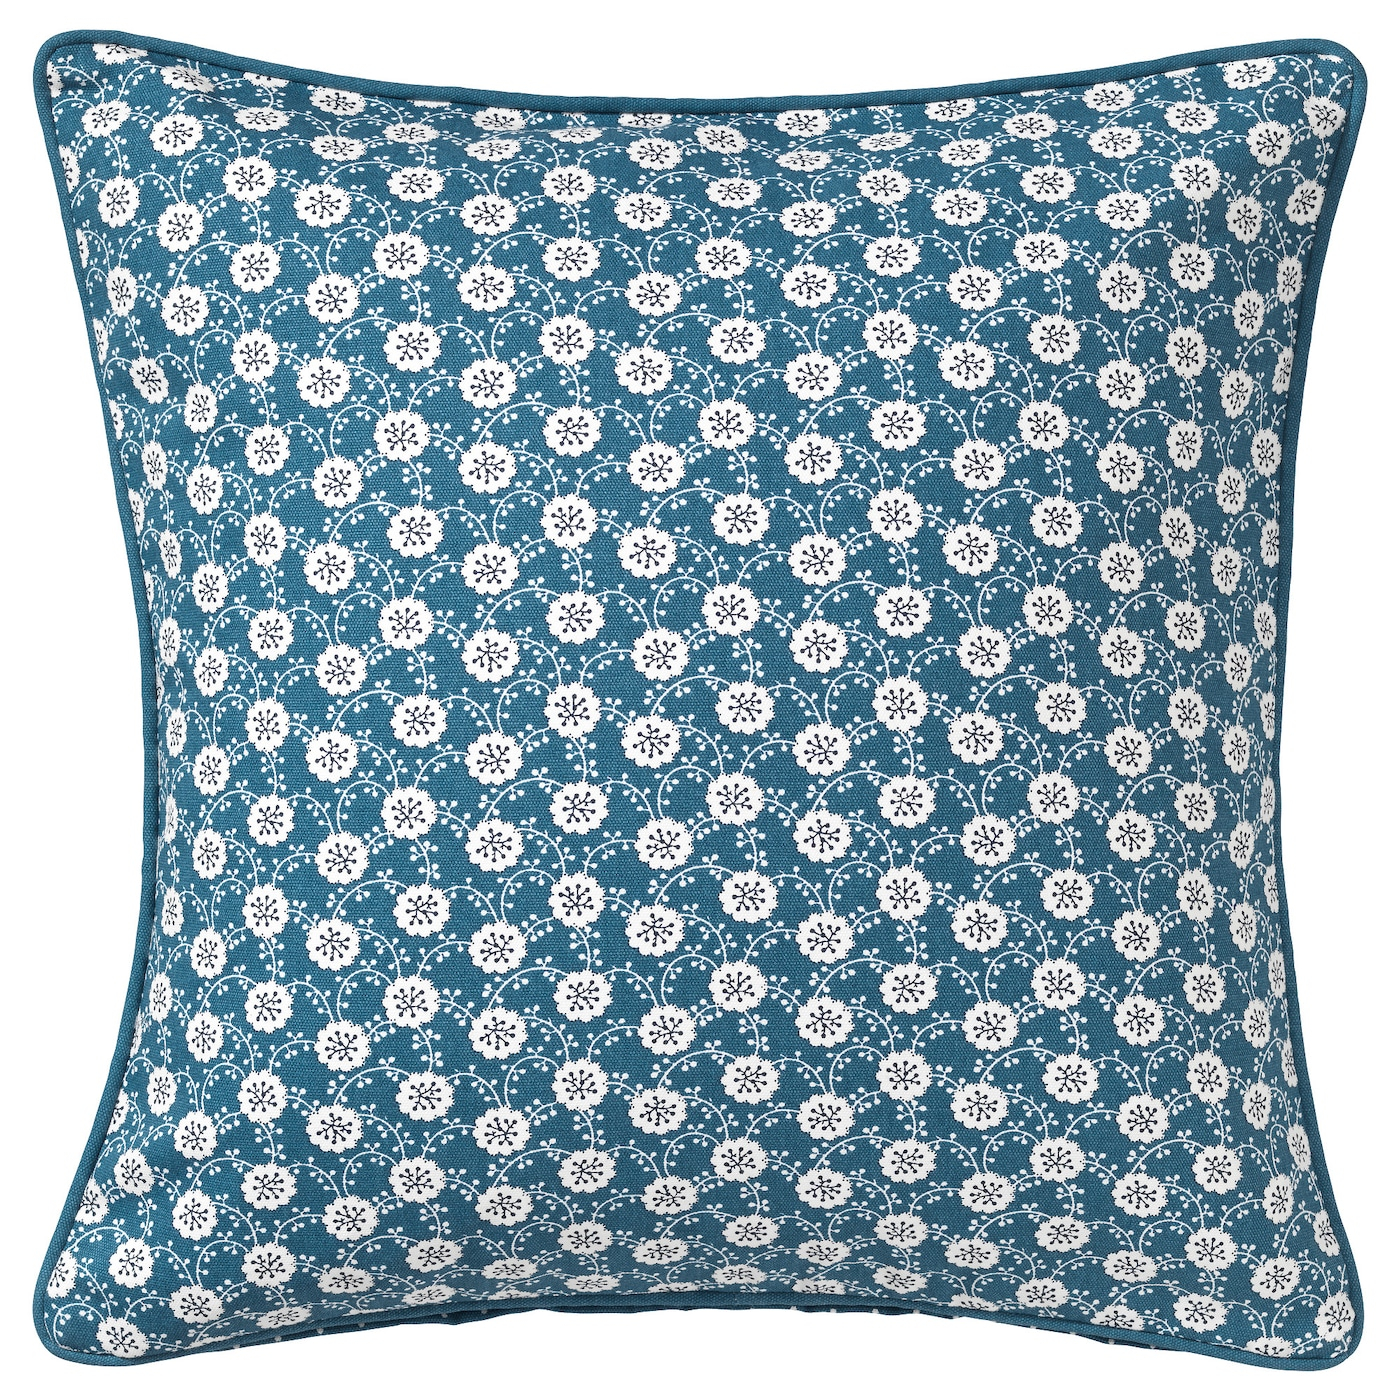 L vkoja cushion cover blue white 50x50 cm ikea for Housse de coussin 60x60